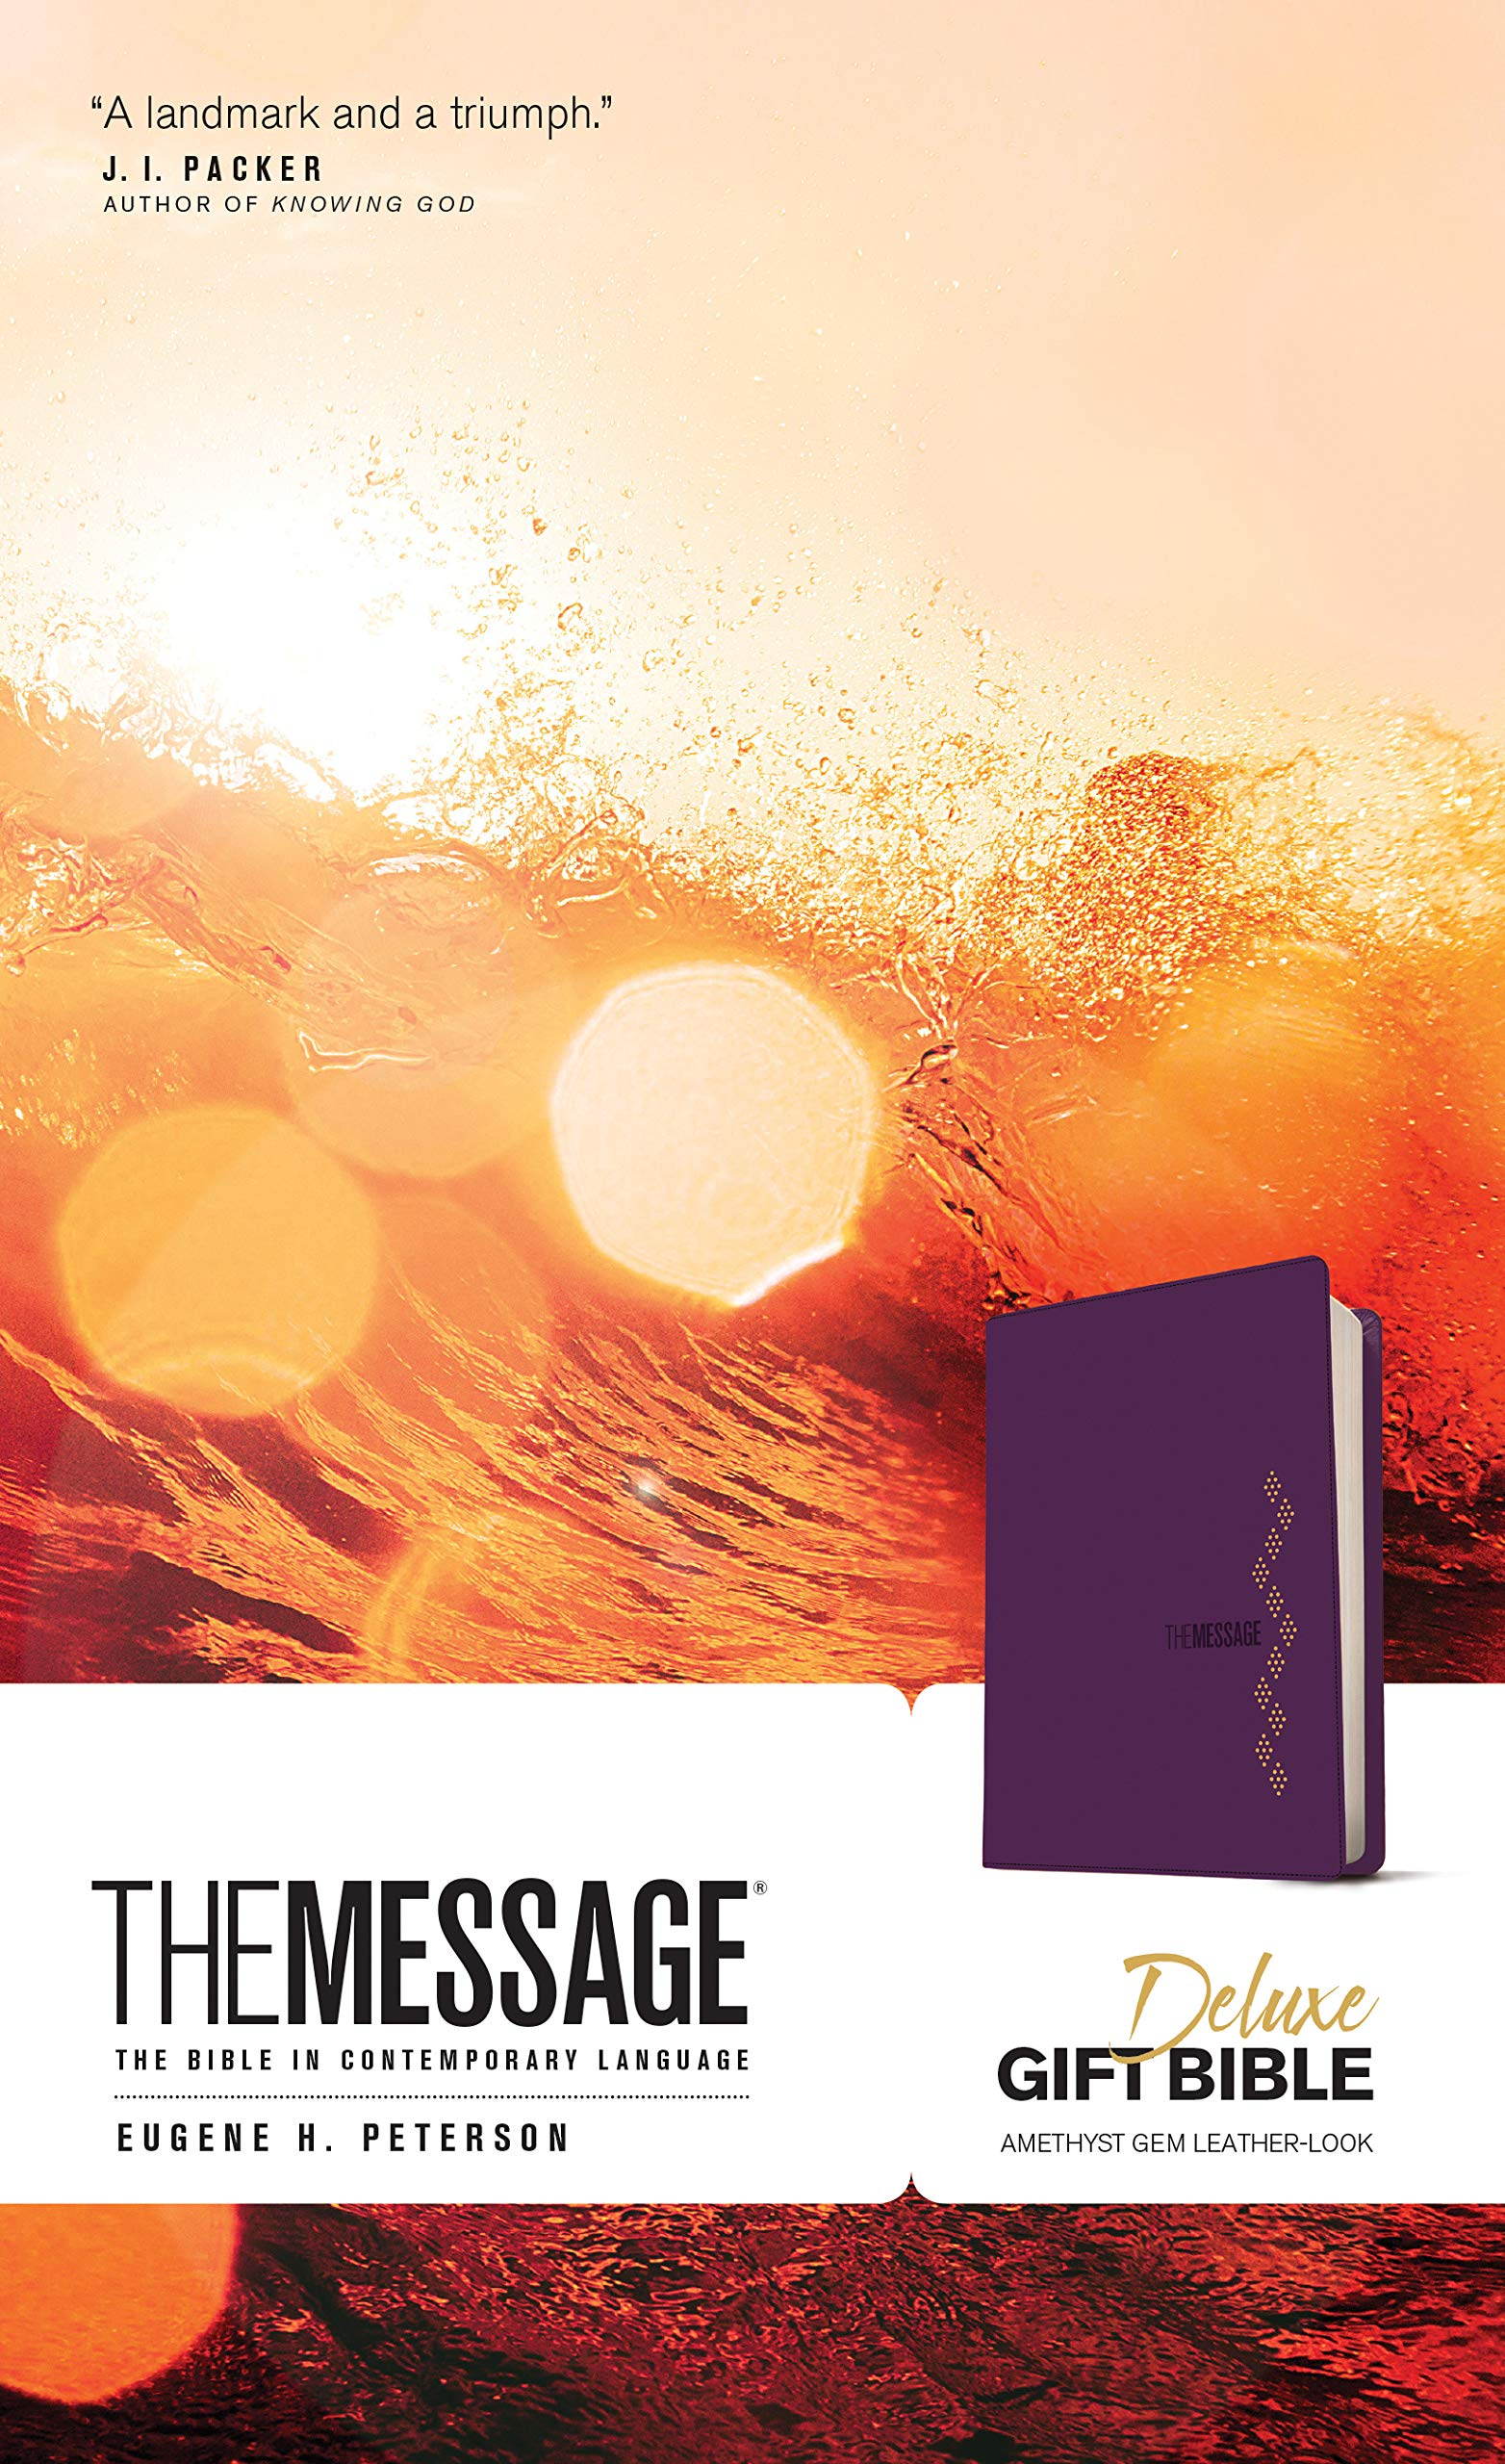 ROCKONLINE | New Creation Church | NCC | Joseph Prince | ROCK Bookshop | ROCK Bookstore | Star Vista | Bibles | Christian Living | Eugene Peterson | Navpress | MSG   The Message Deluxe Gift Bible Leather-Look, Amethyst Gem | Free delivery for Singapore Orders above $50.